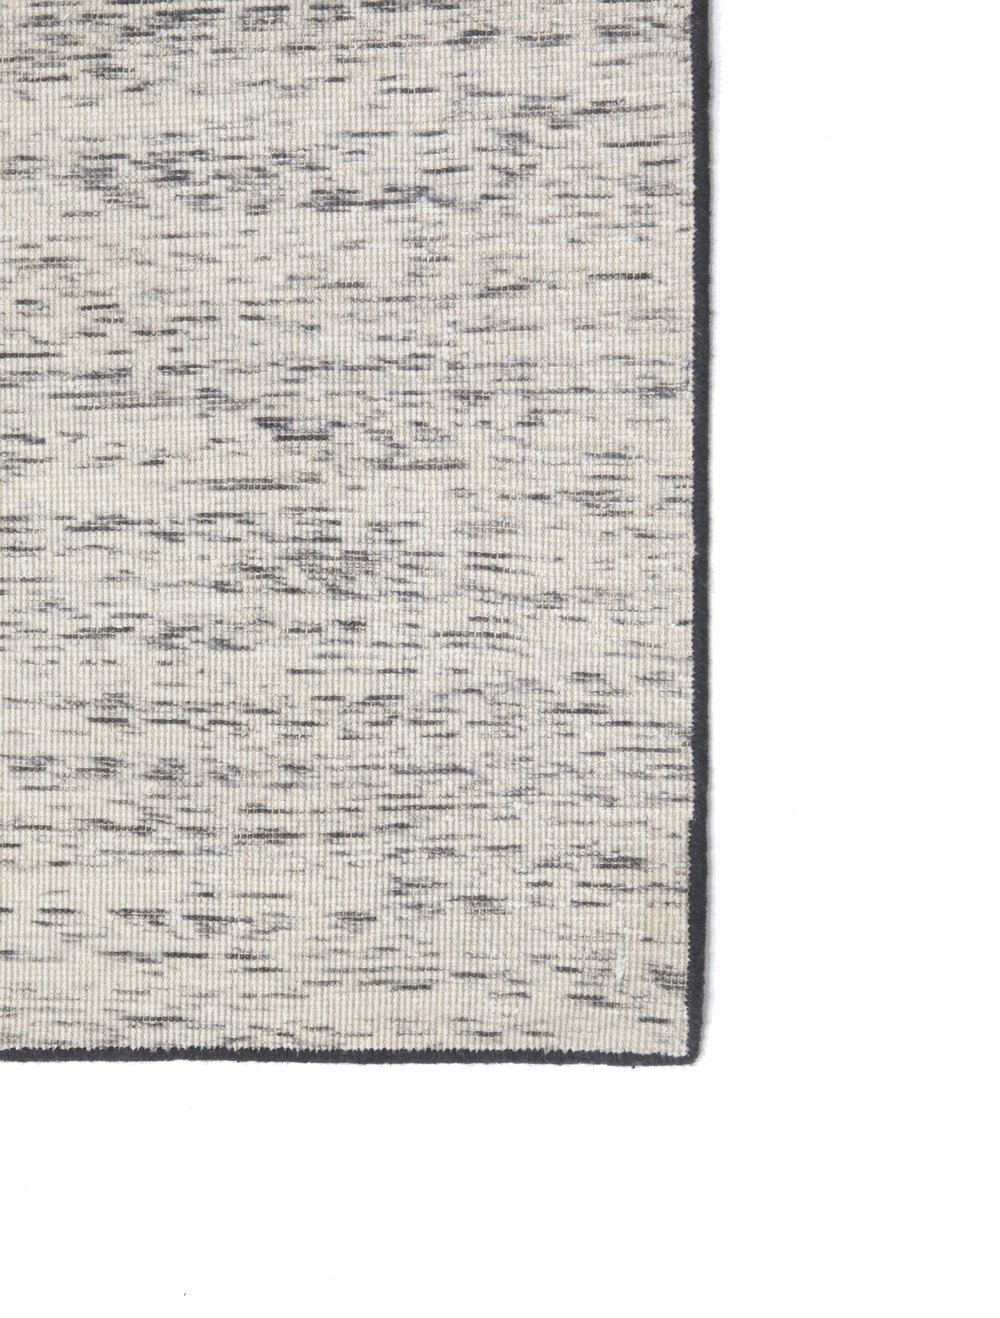 Detail shot of Tilkka Area Rug